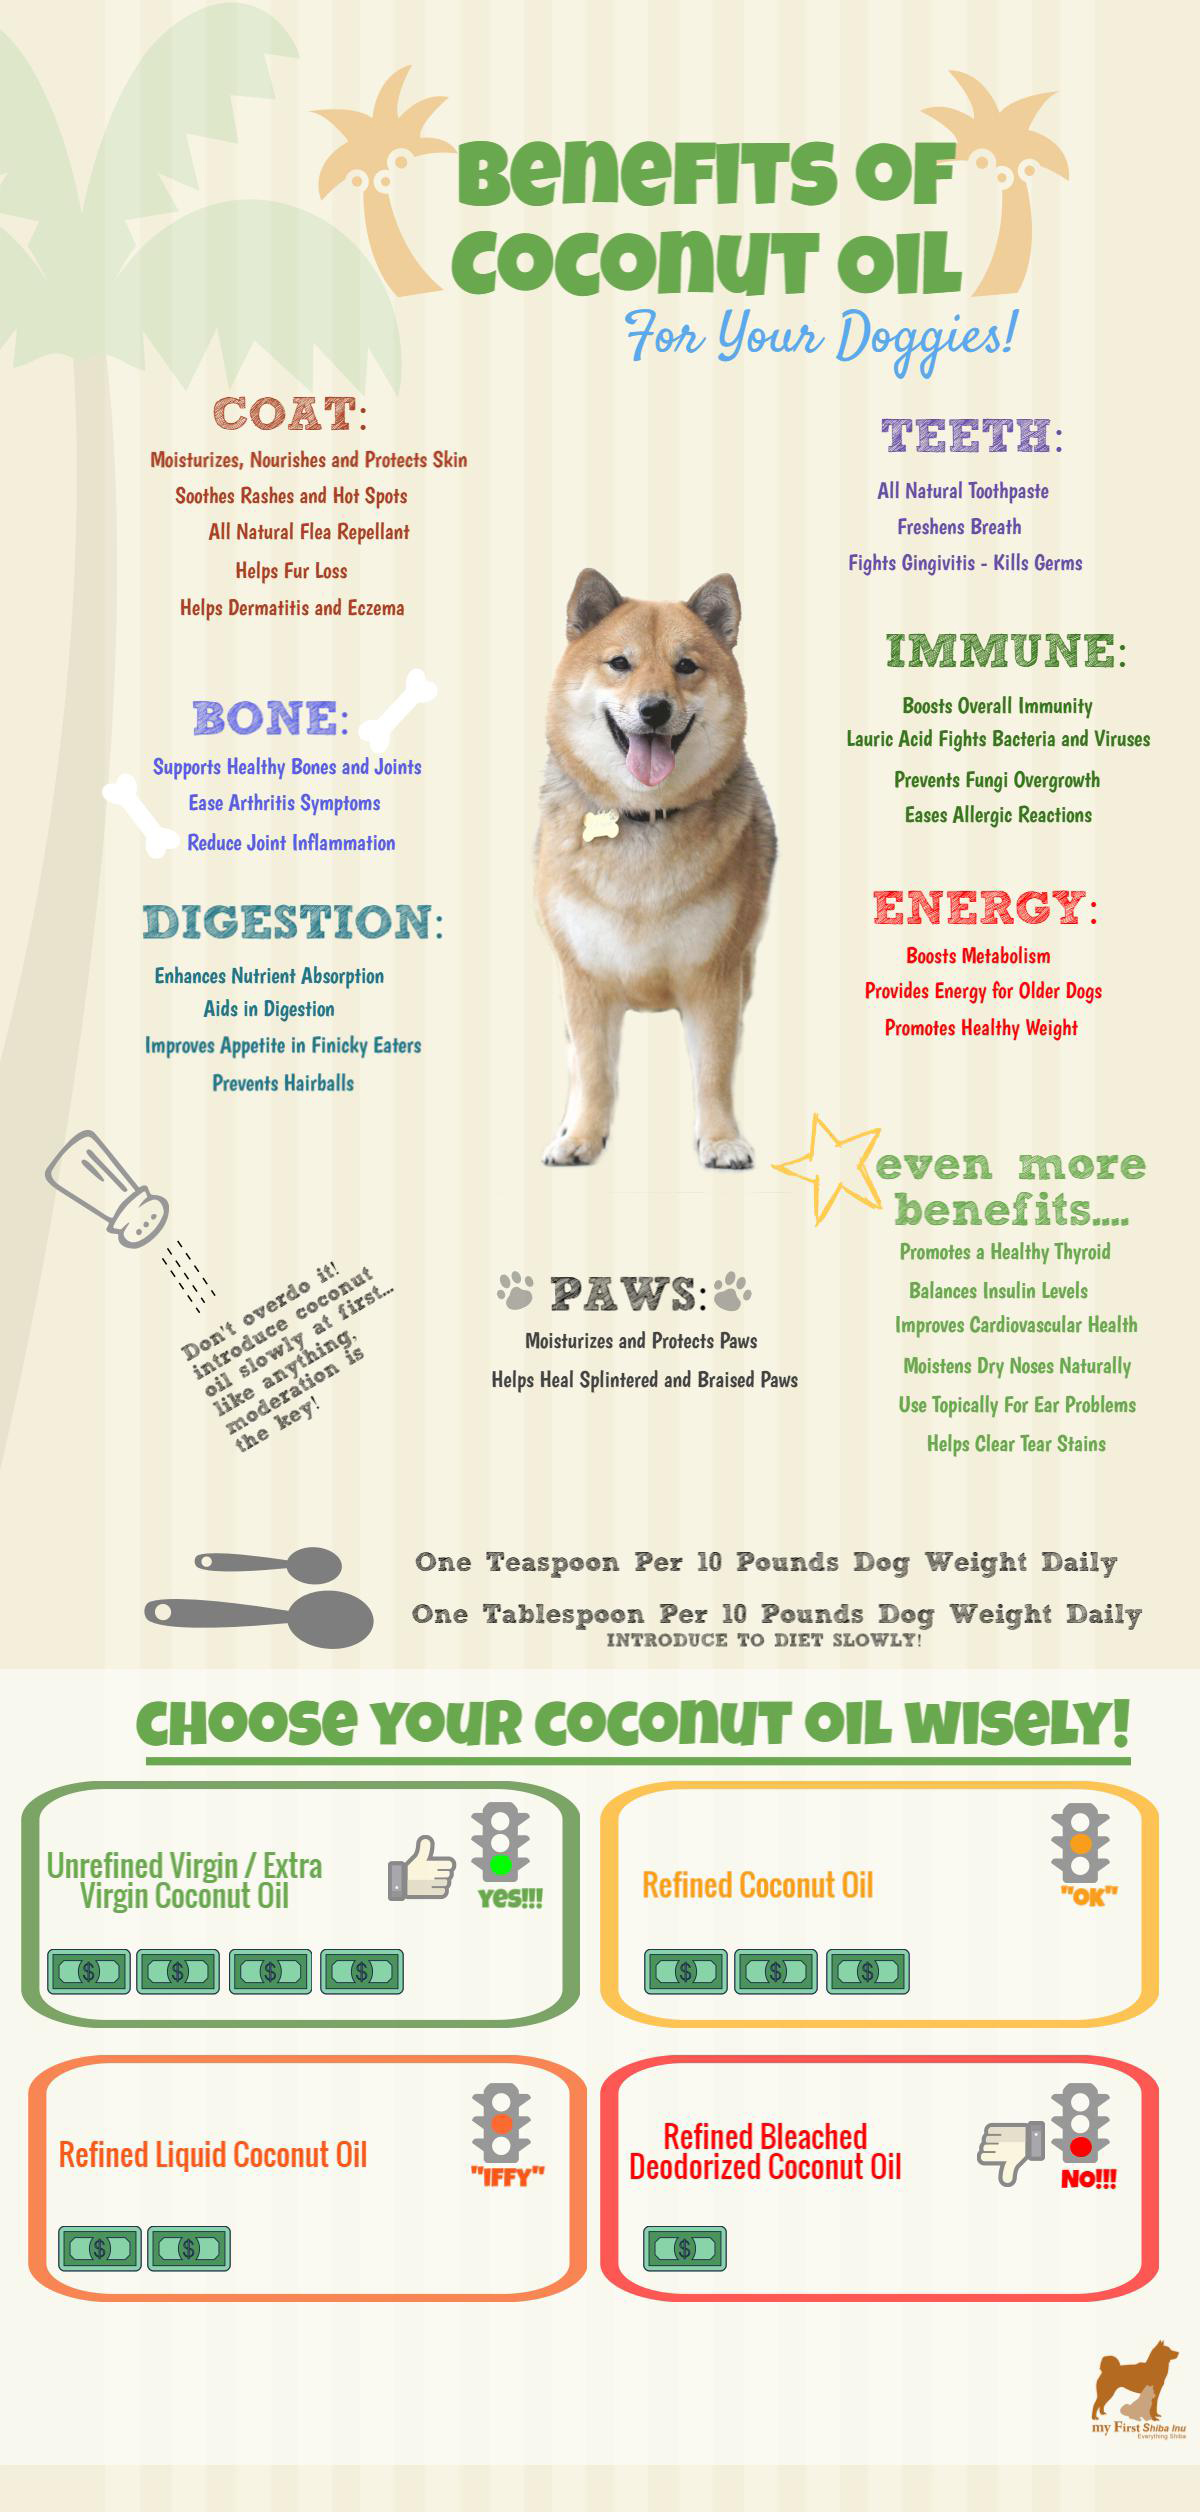 Do You Know that Coconut Oil is a Superfood for Dogs? - Infographic